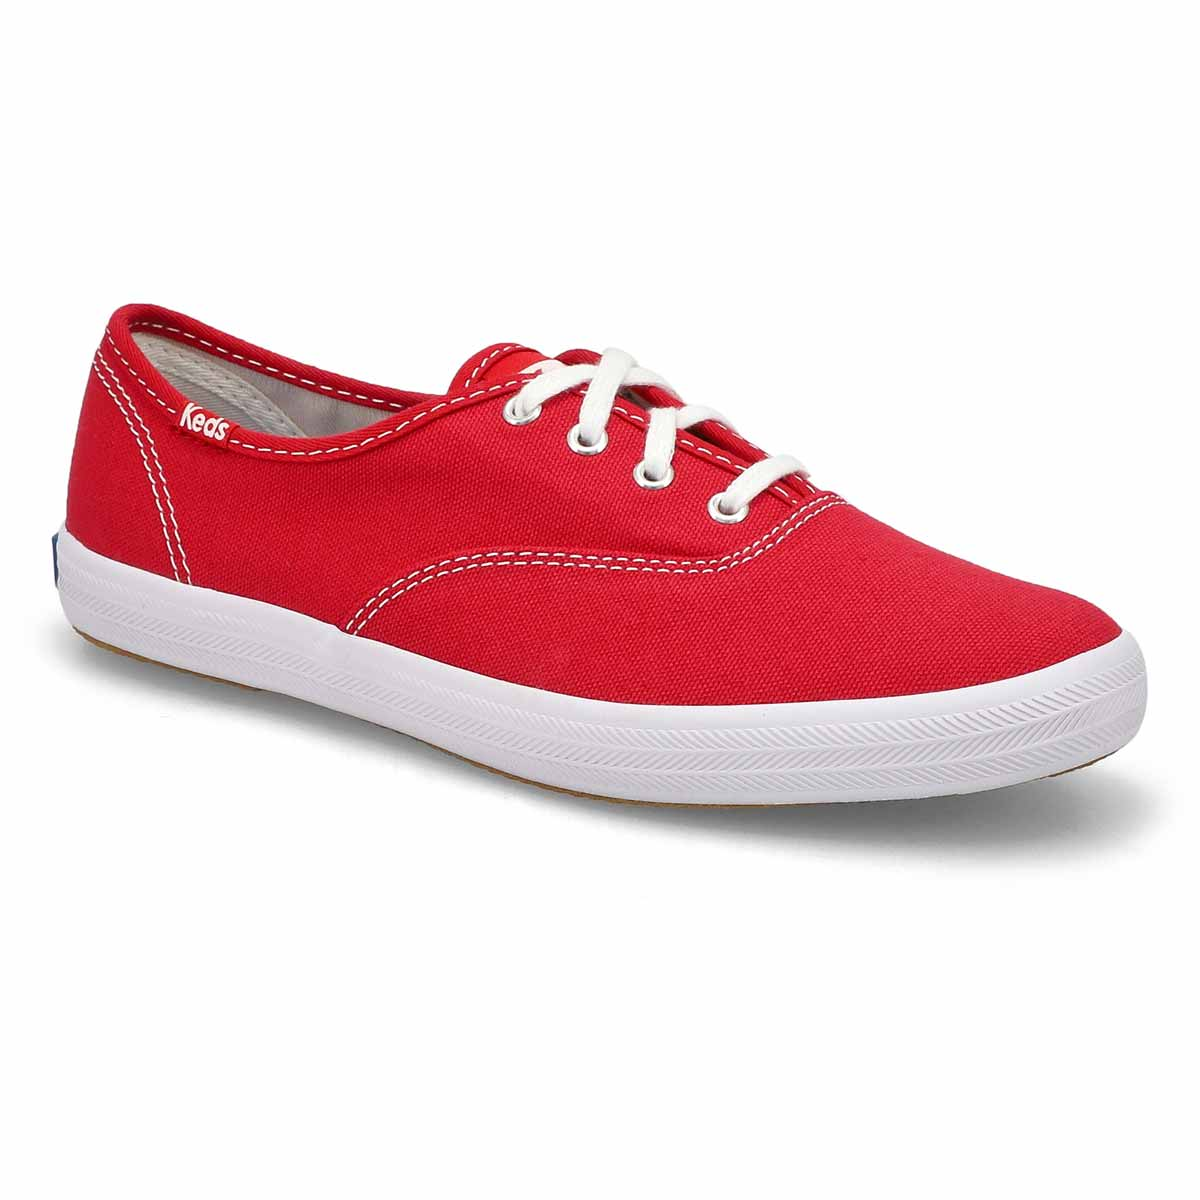 bedee00fd93 Keds Women s CHAMPION OXFORD red CVO sneakers